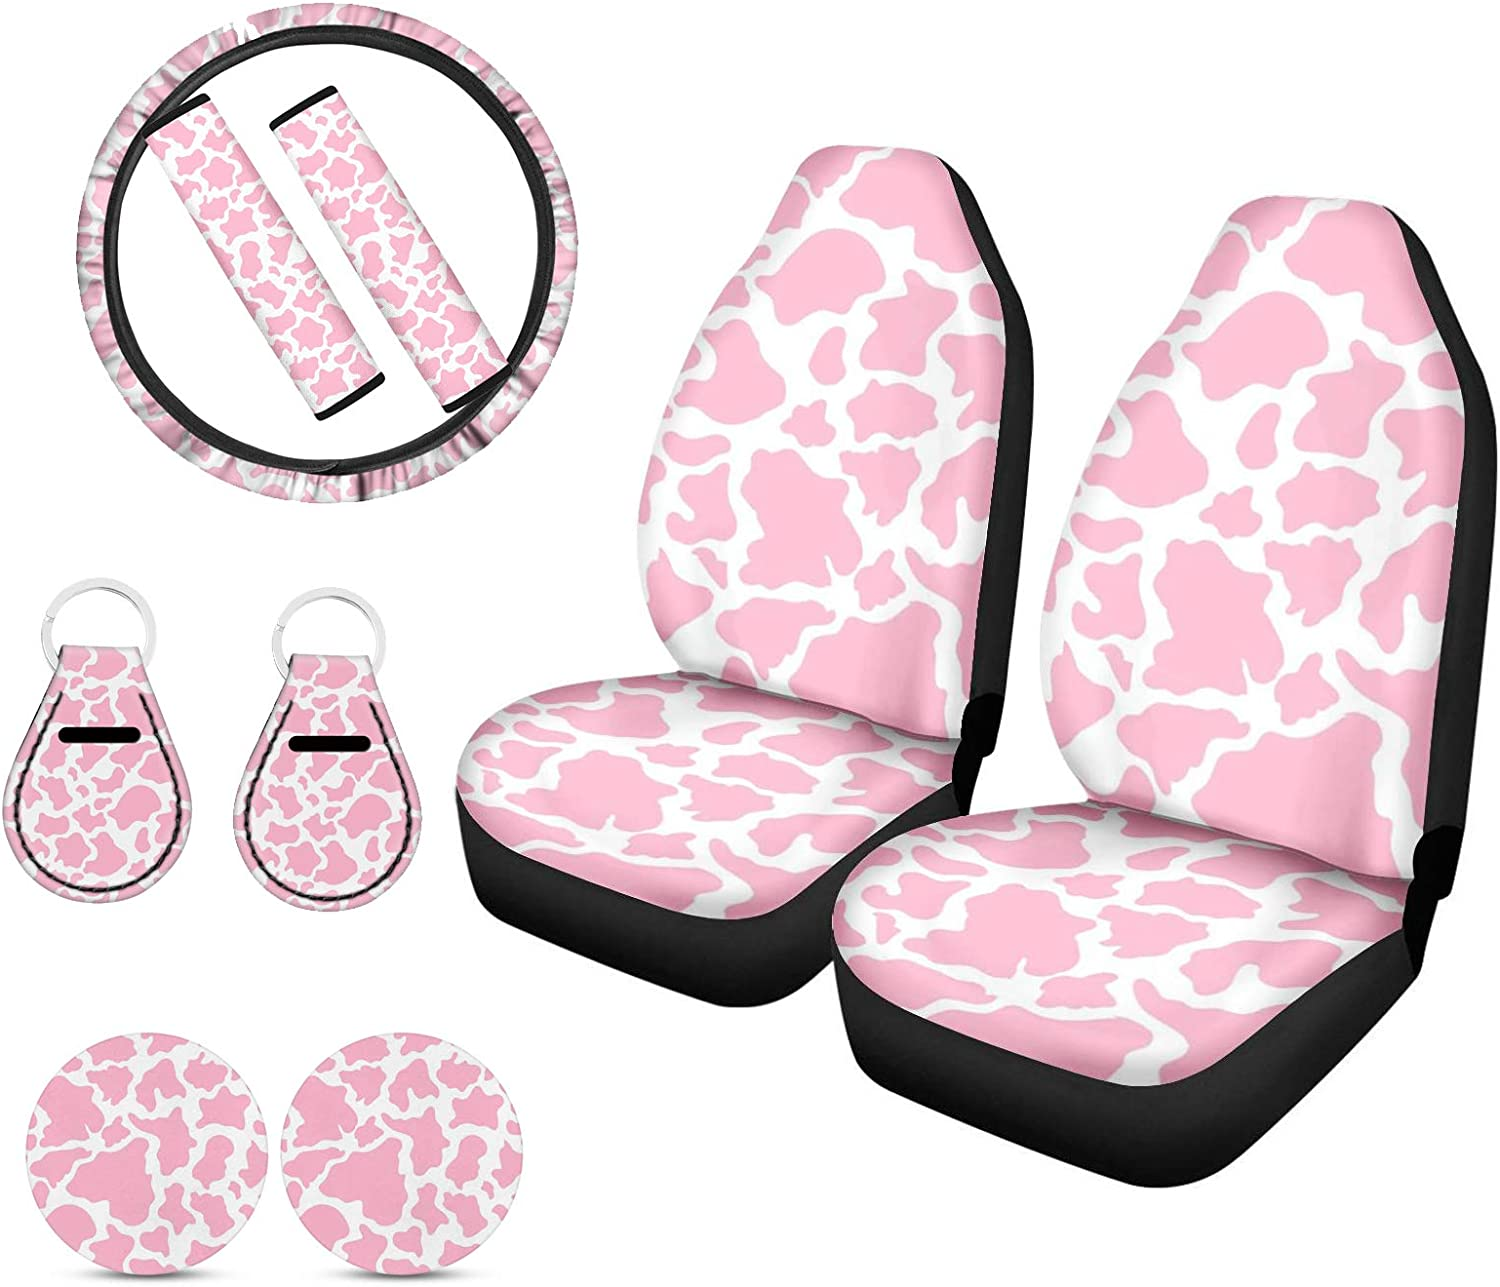 Upetstory Pink Cow Seat Covers Ste Bucket New York Mall Manufacturer direct delivery with Front